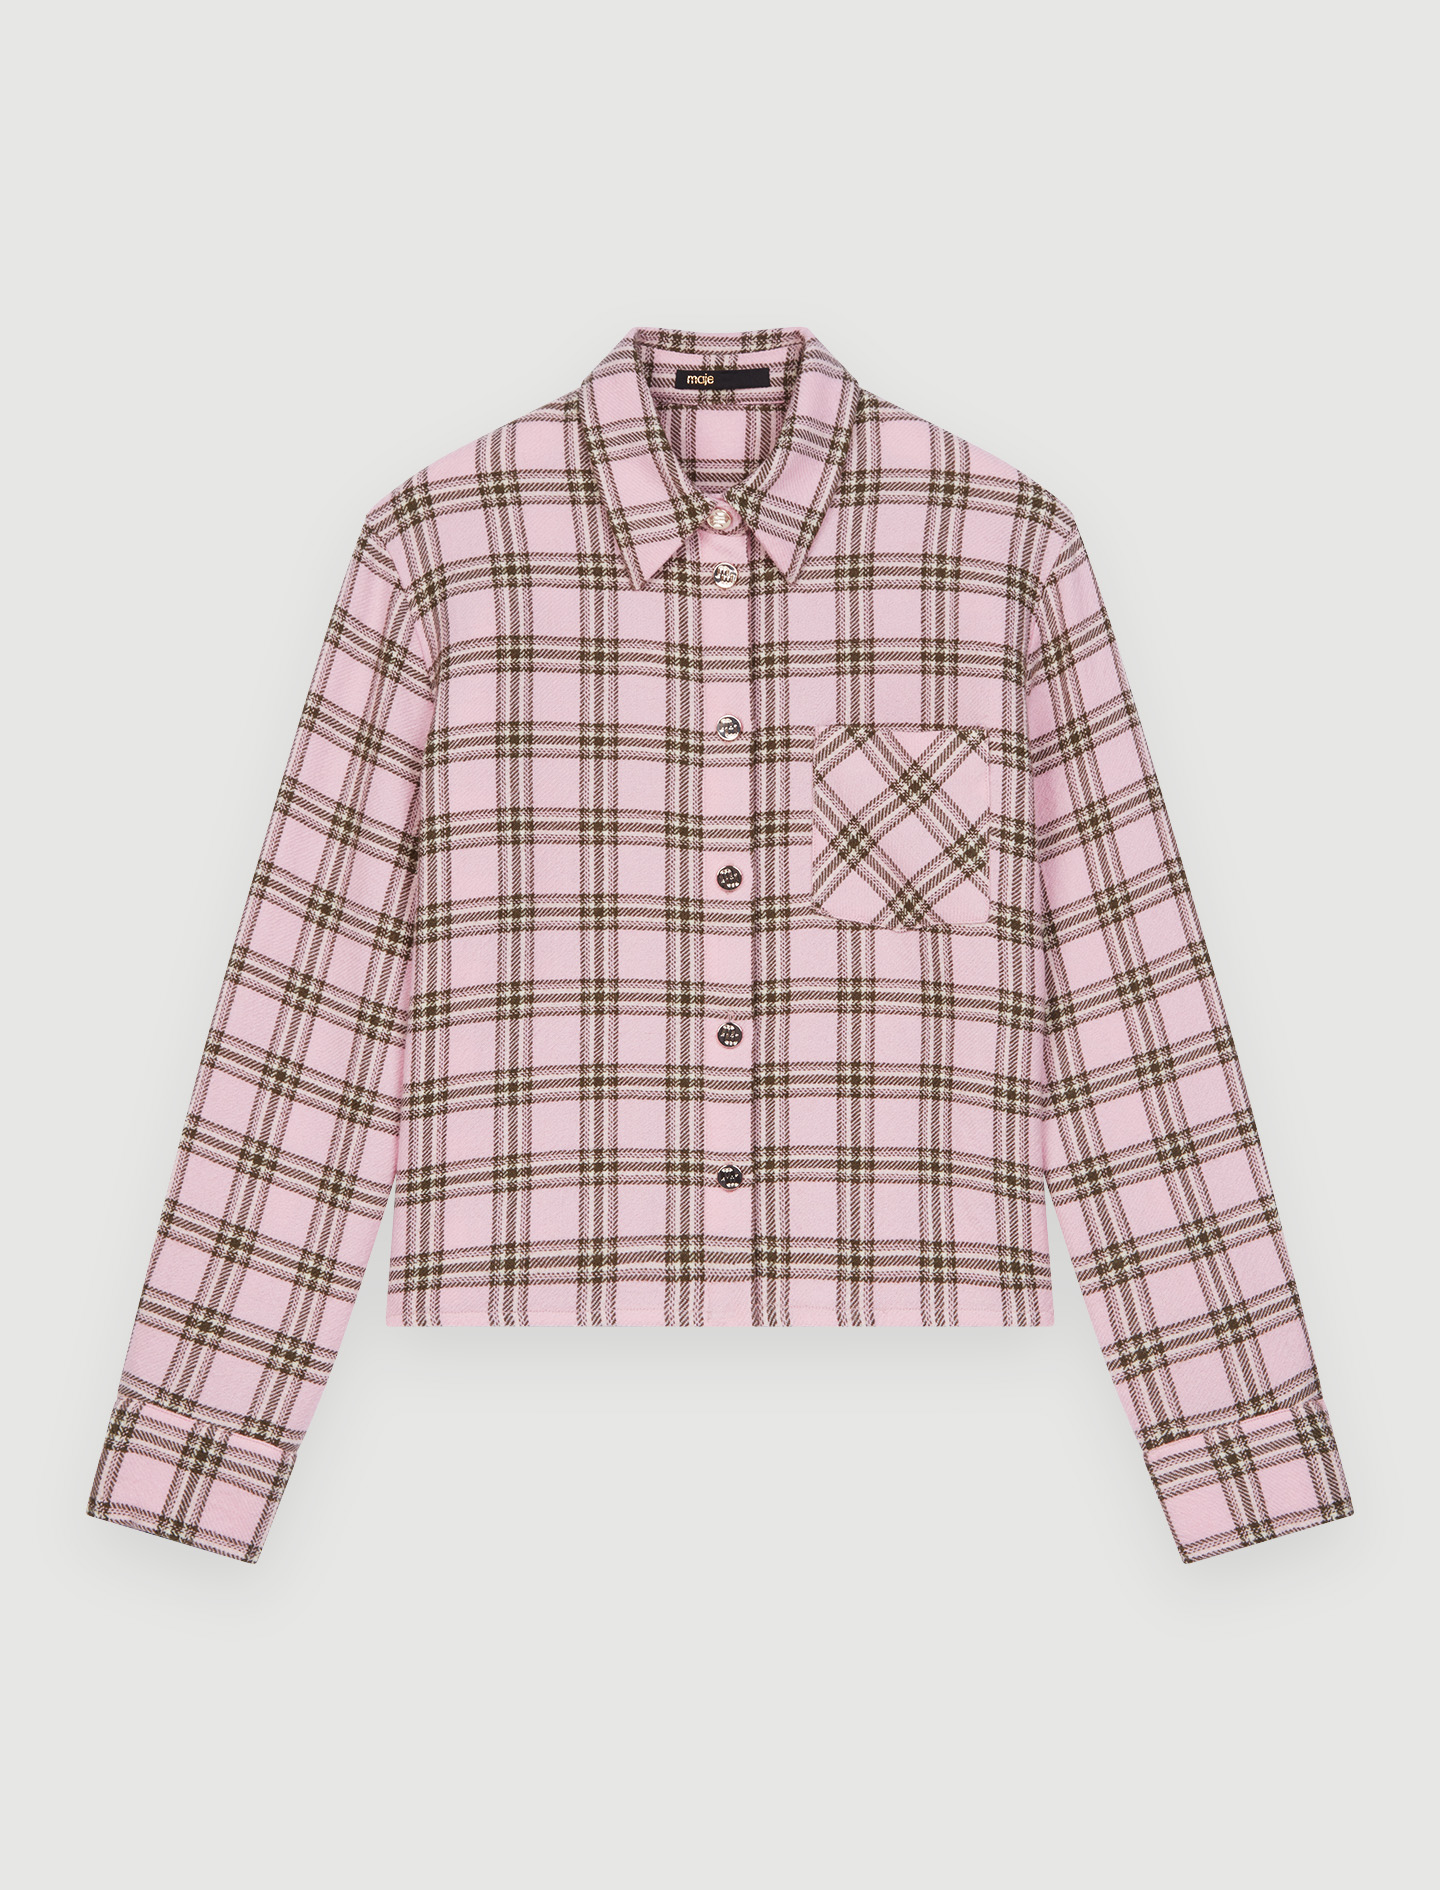 Checked shirt for tying - Pink